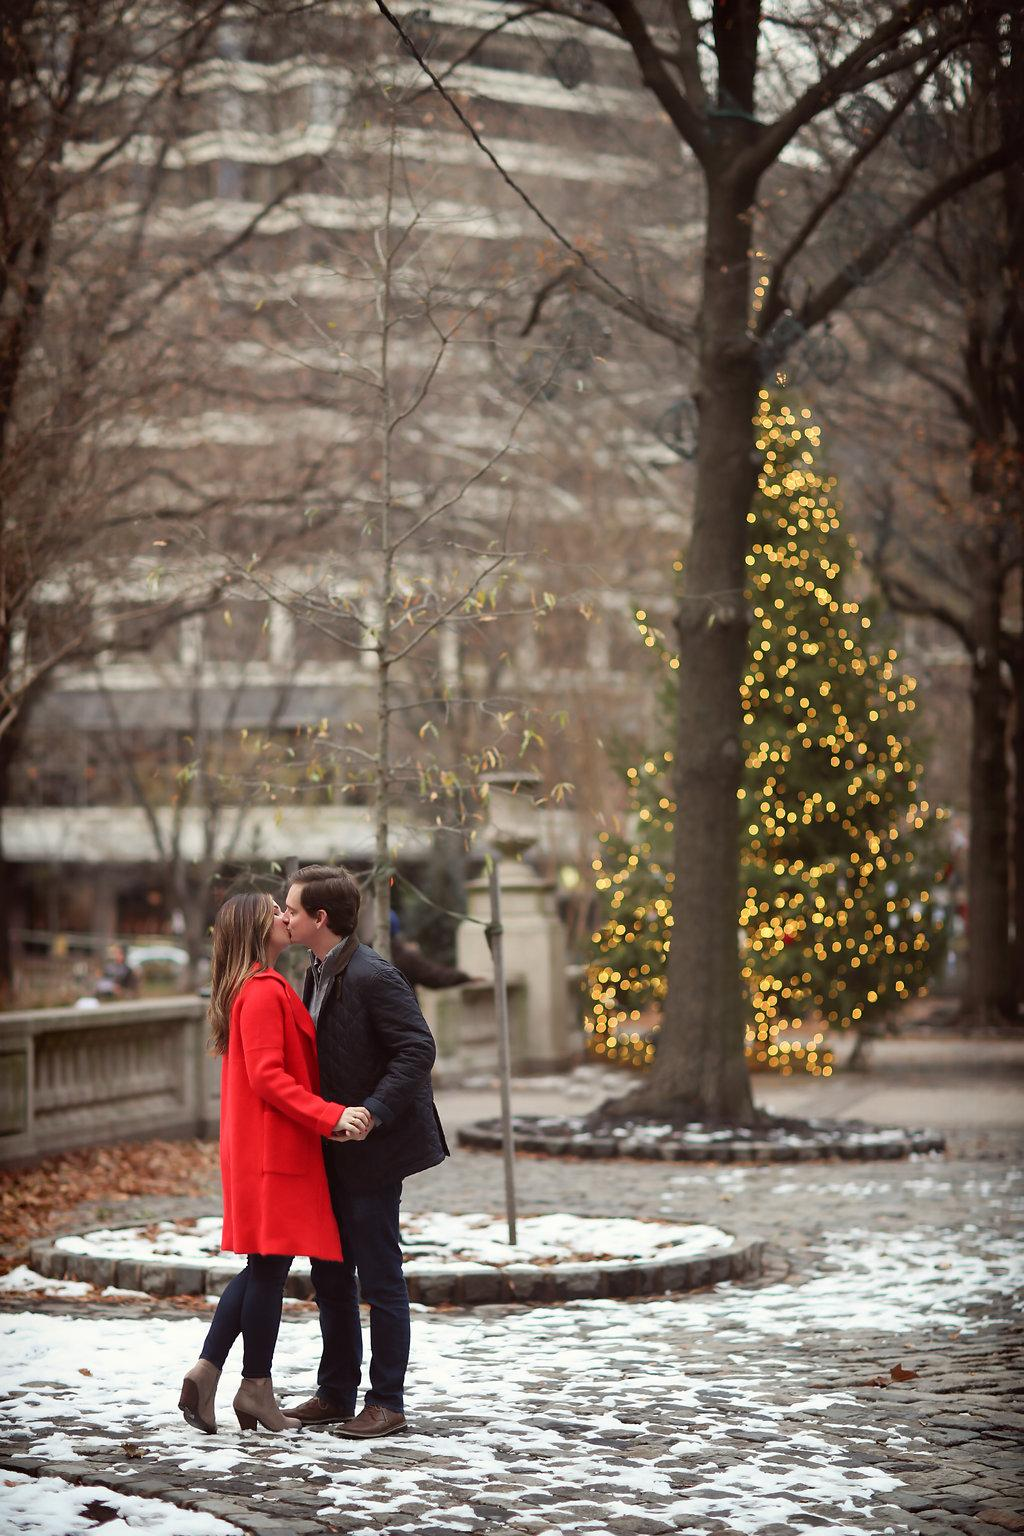 Festive Winter Engagement Session in Rittenhouse Square Alison Conklin Photography Philly In Love Philadelphia Weddings Wedding Inspiration Philadelphia Wedding Blog